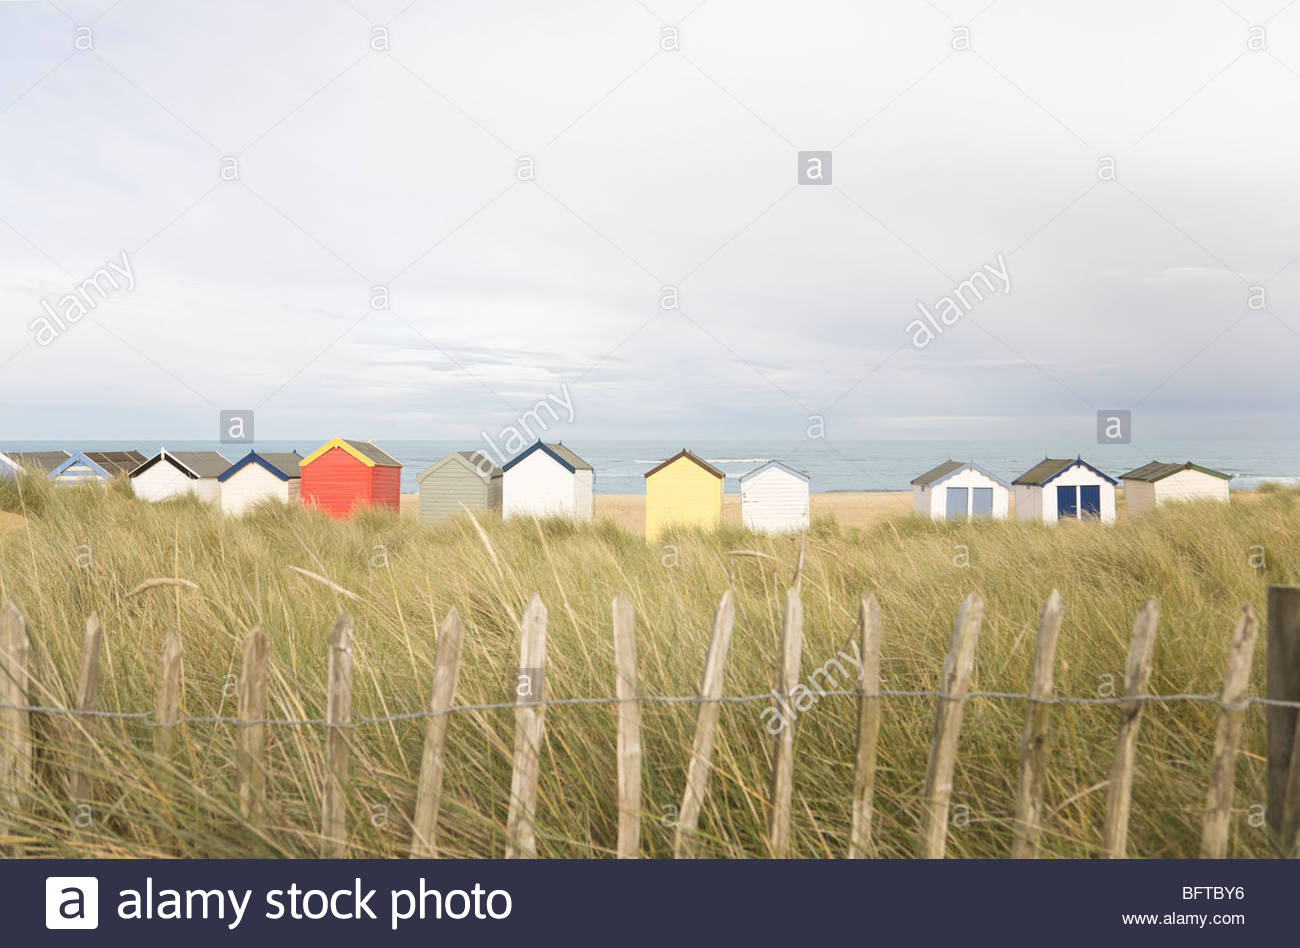 Beach Huts Behind Fencing Stock Photo Royalty Free Image